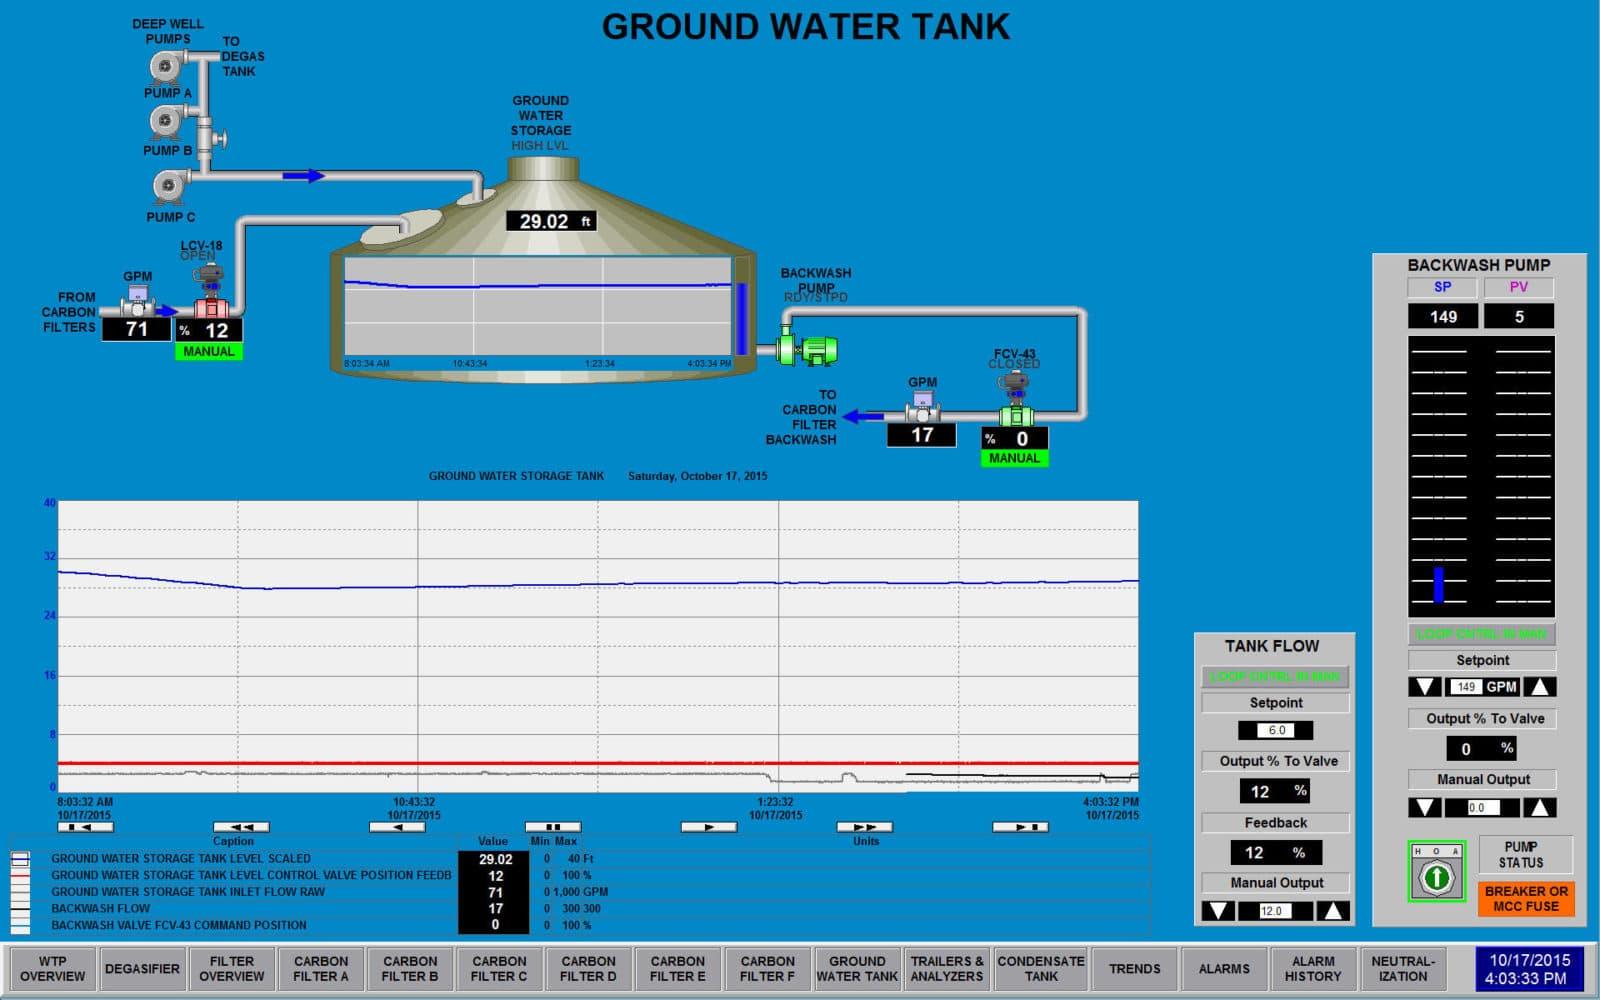 GROUND WATER STORAGE TANK